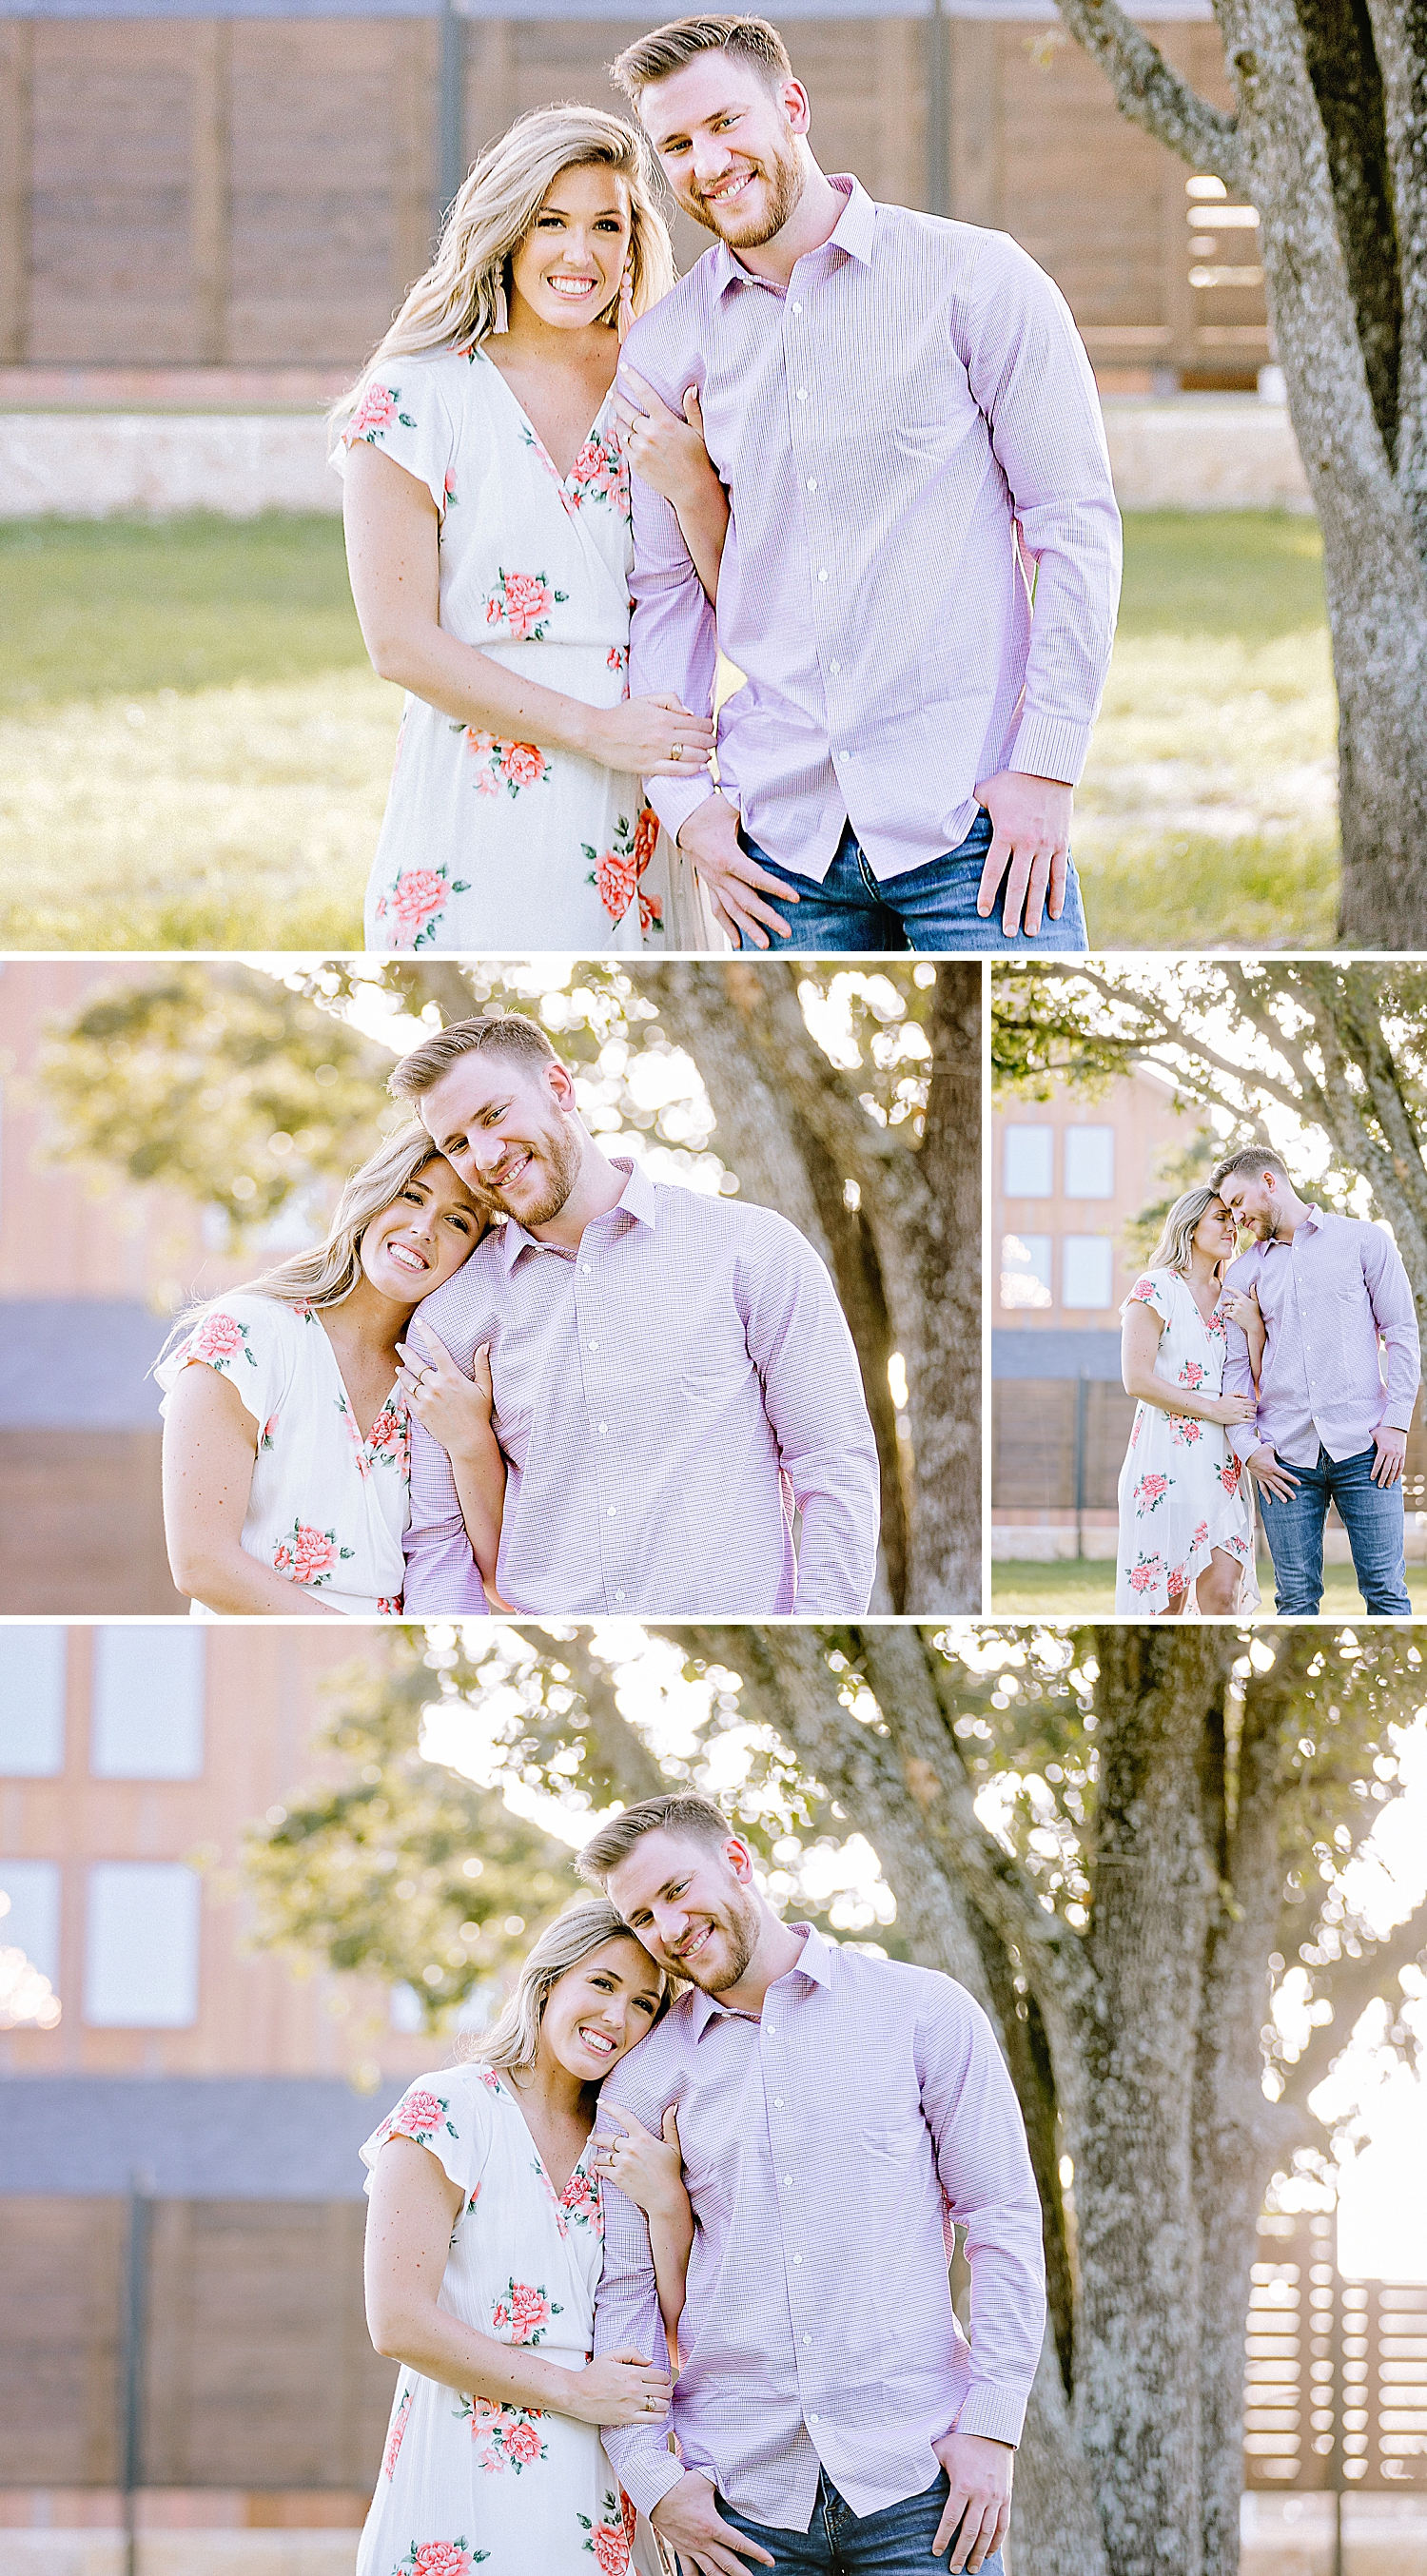 Carly-Barton-Photography-Engagement-Photos-College-Station-Texas-The-Weinberg-at-Wixon-Valley_0020.jpg